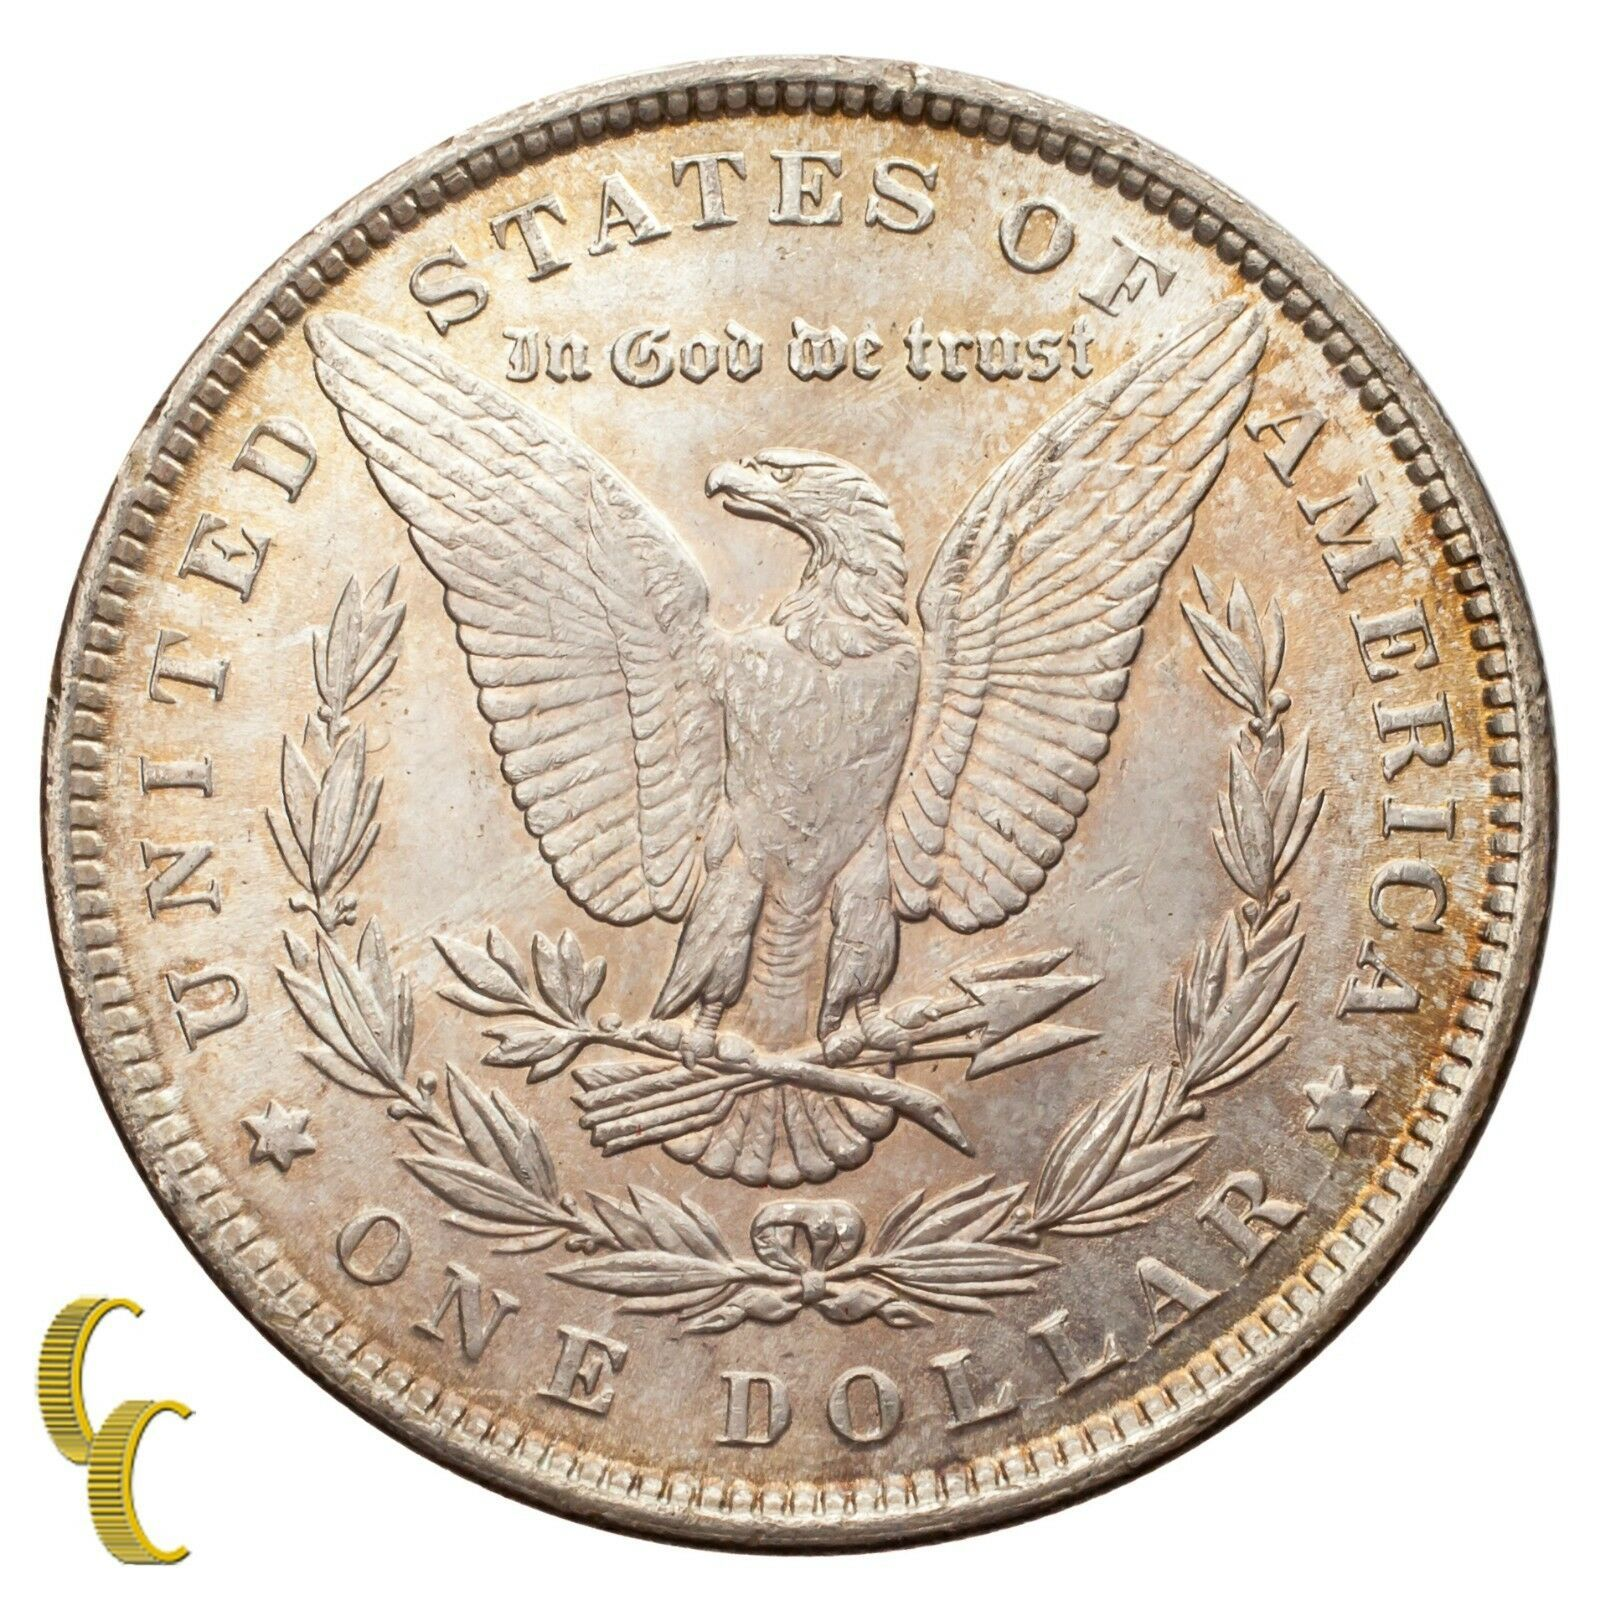 1884 Silver Morgan Dollar (Choice BU Condition) Full Mint Luster image 2